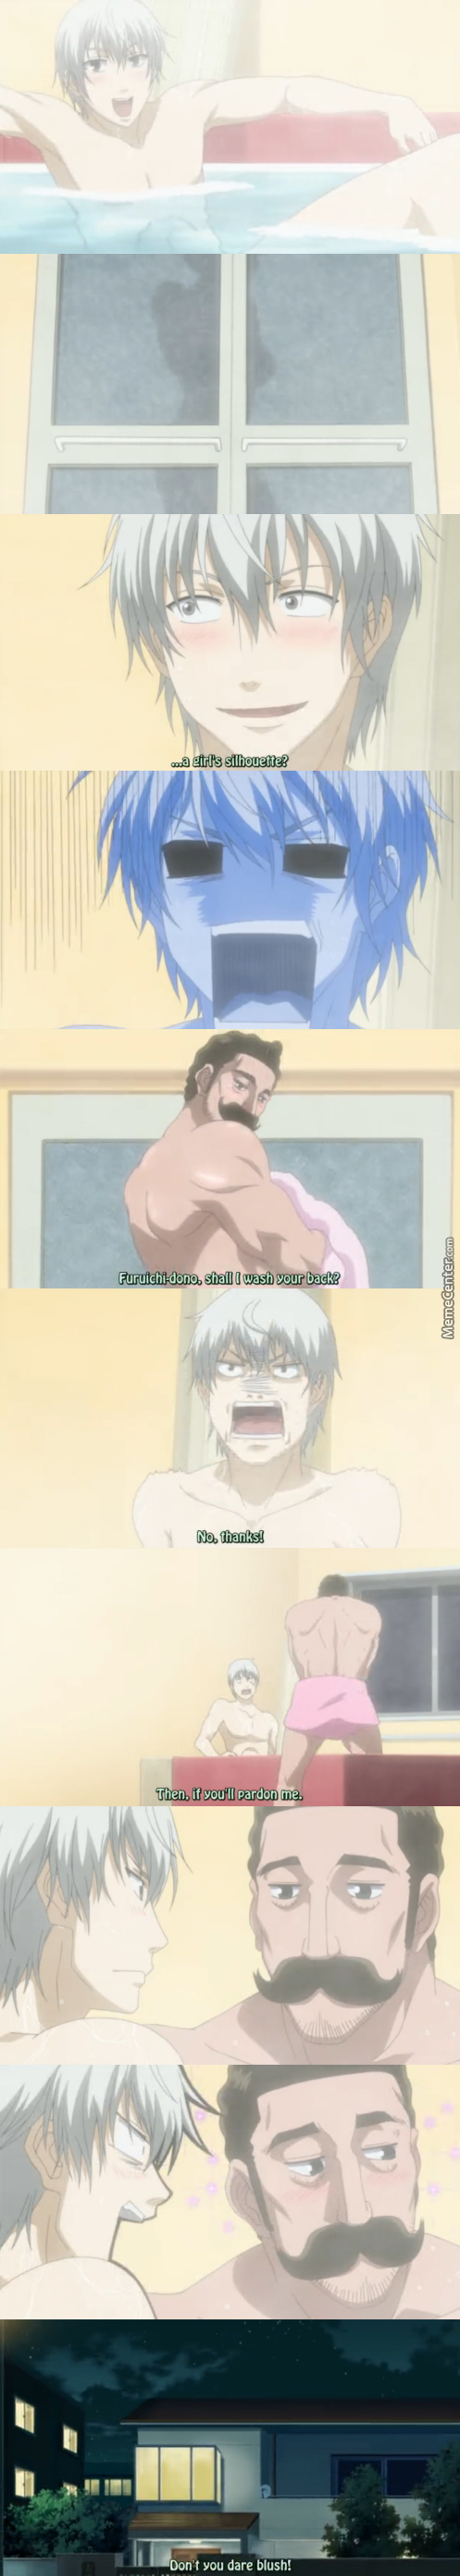 That Moment When Freddie Mercury Wants To Wash Your Back. (Anime: Beelzebub )